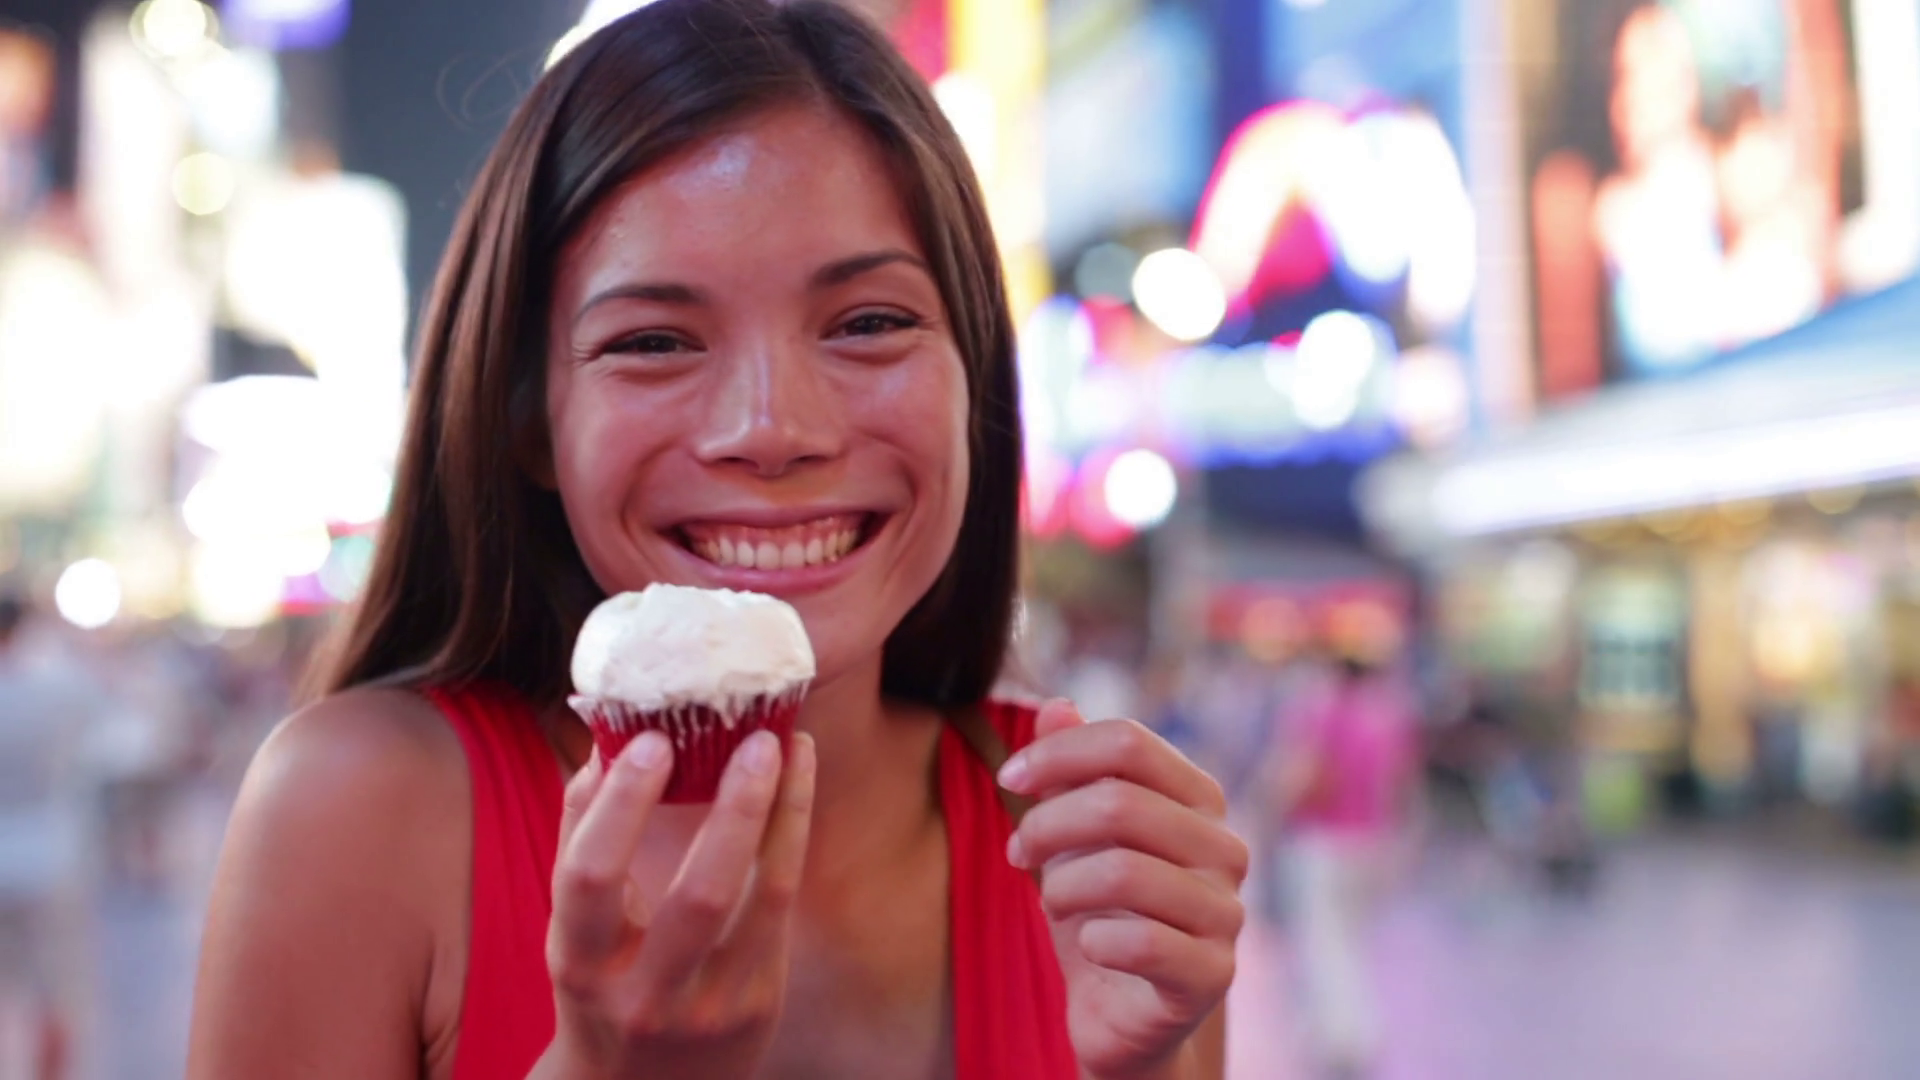 Cupcakes - woman eating cupcake in New York on Times Square ...